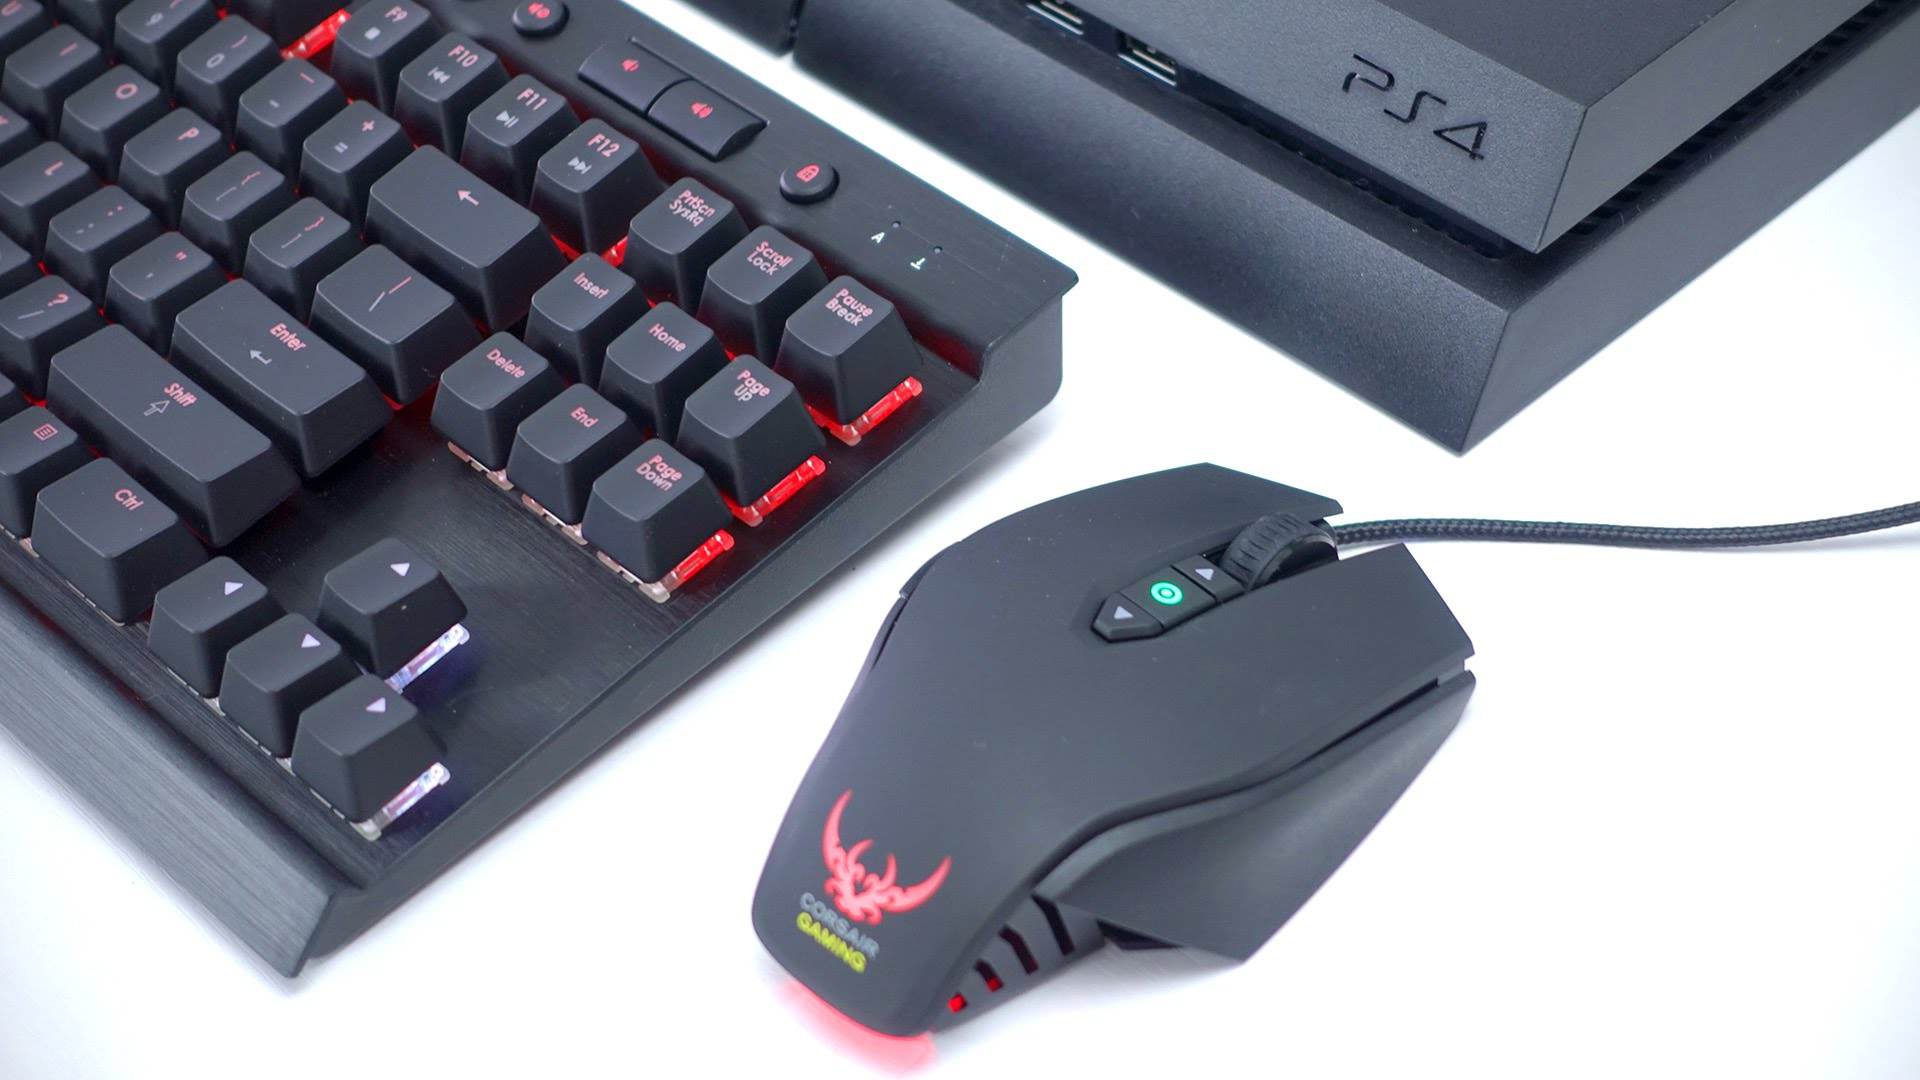 WHAT PS4 GAMES WORK WITH KEYBOARD AND MOUSE - YouTube